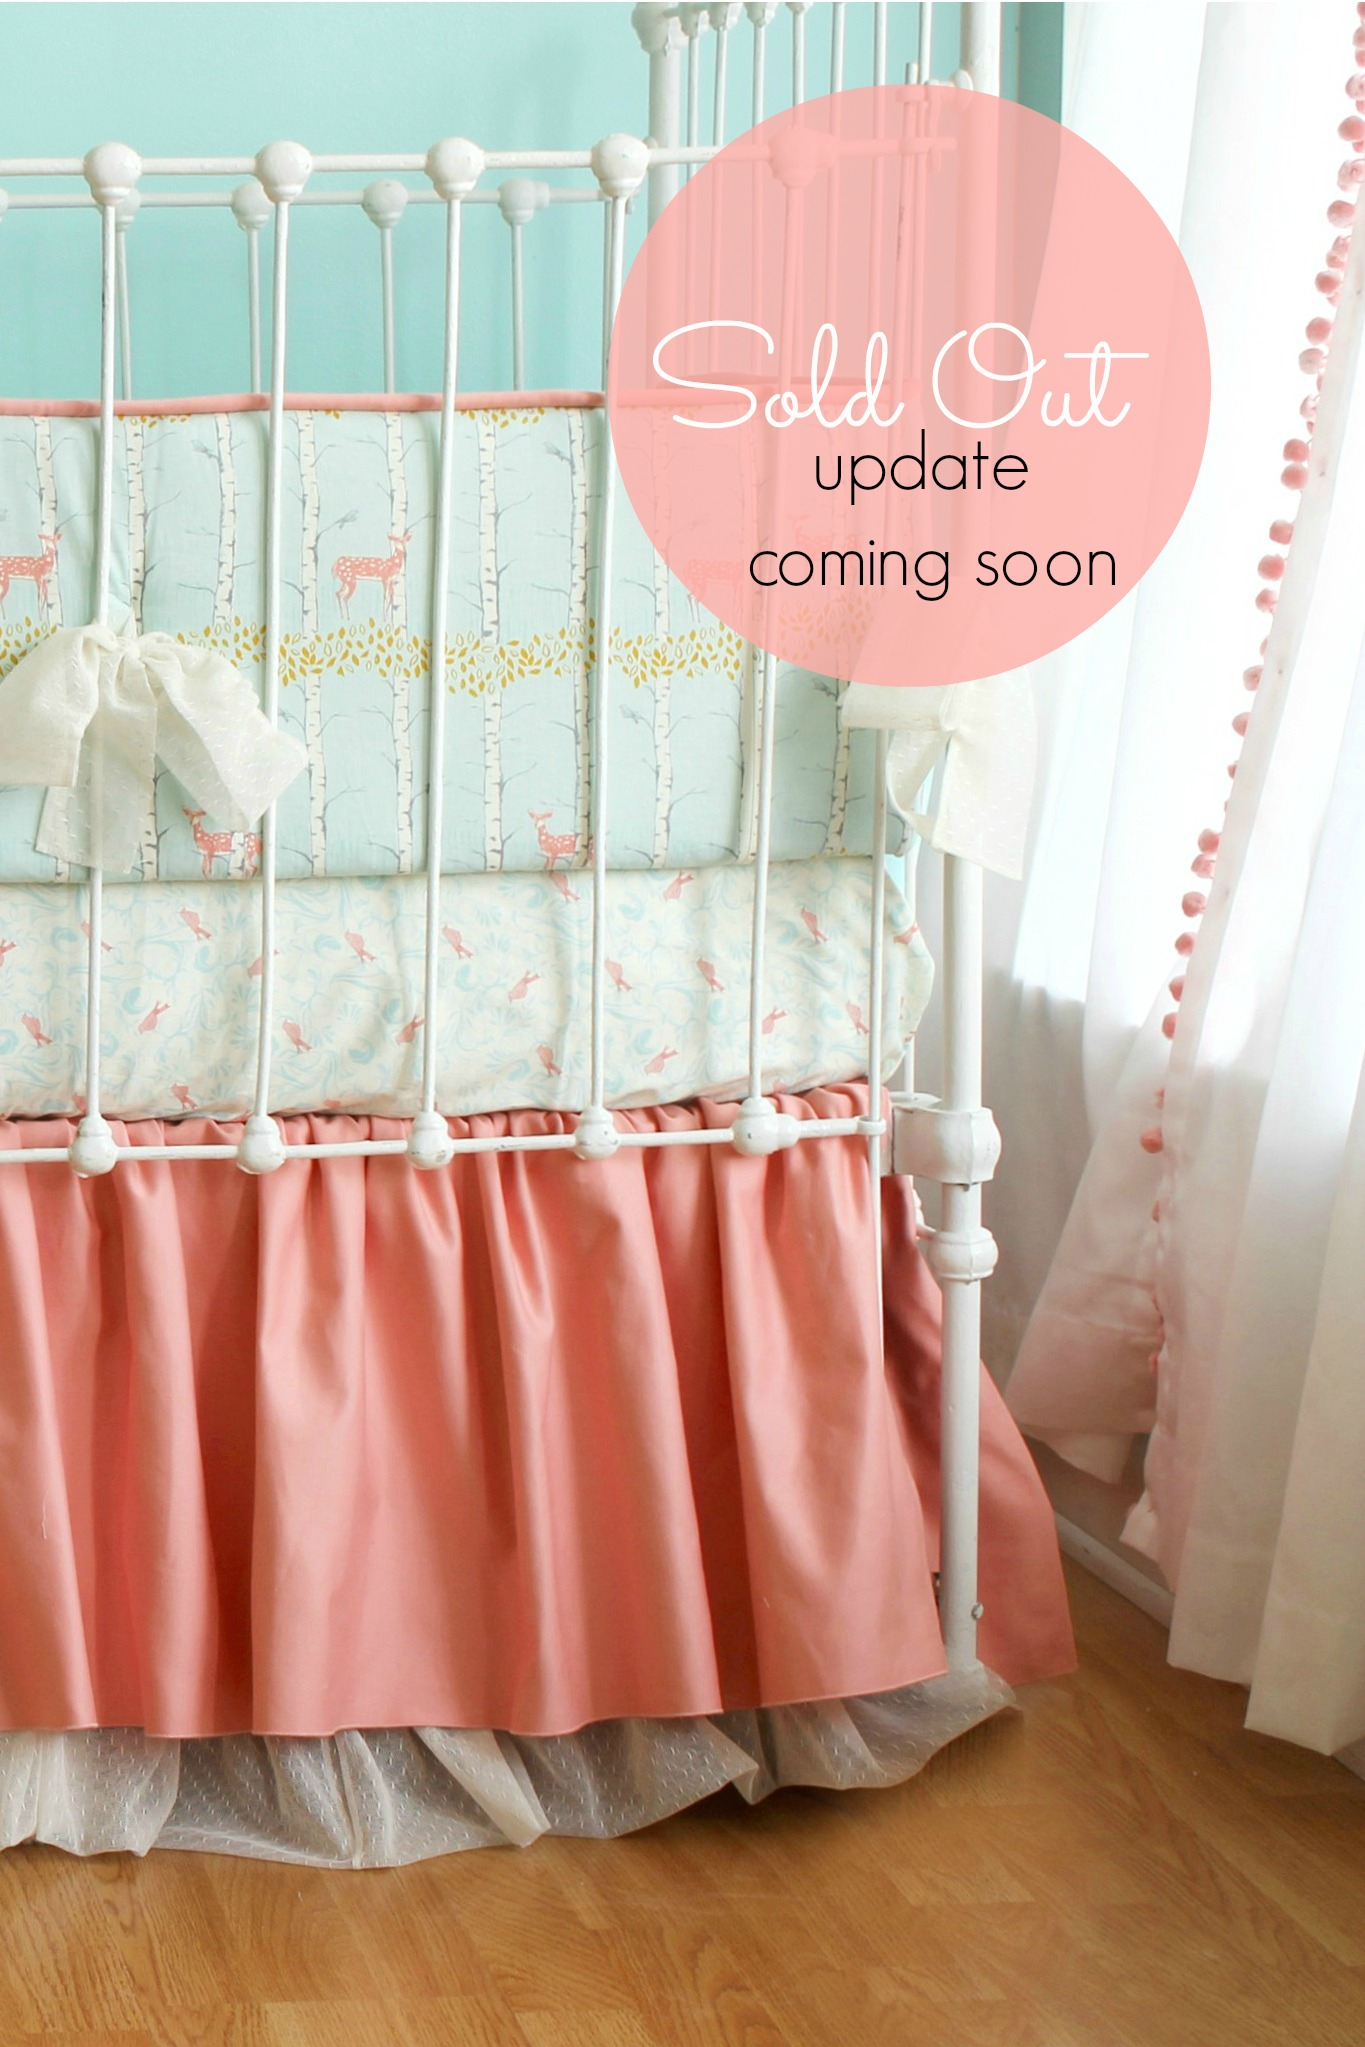 unicorn cribs copy floral company farmhouse baby dsc bedding peach products crib of hudson